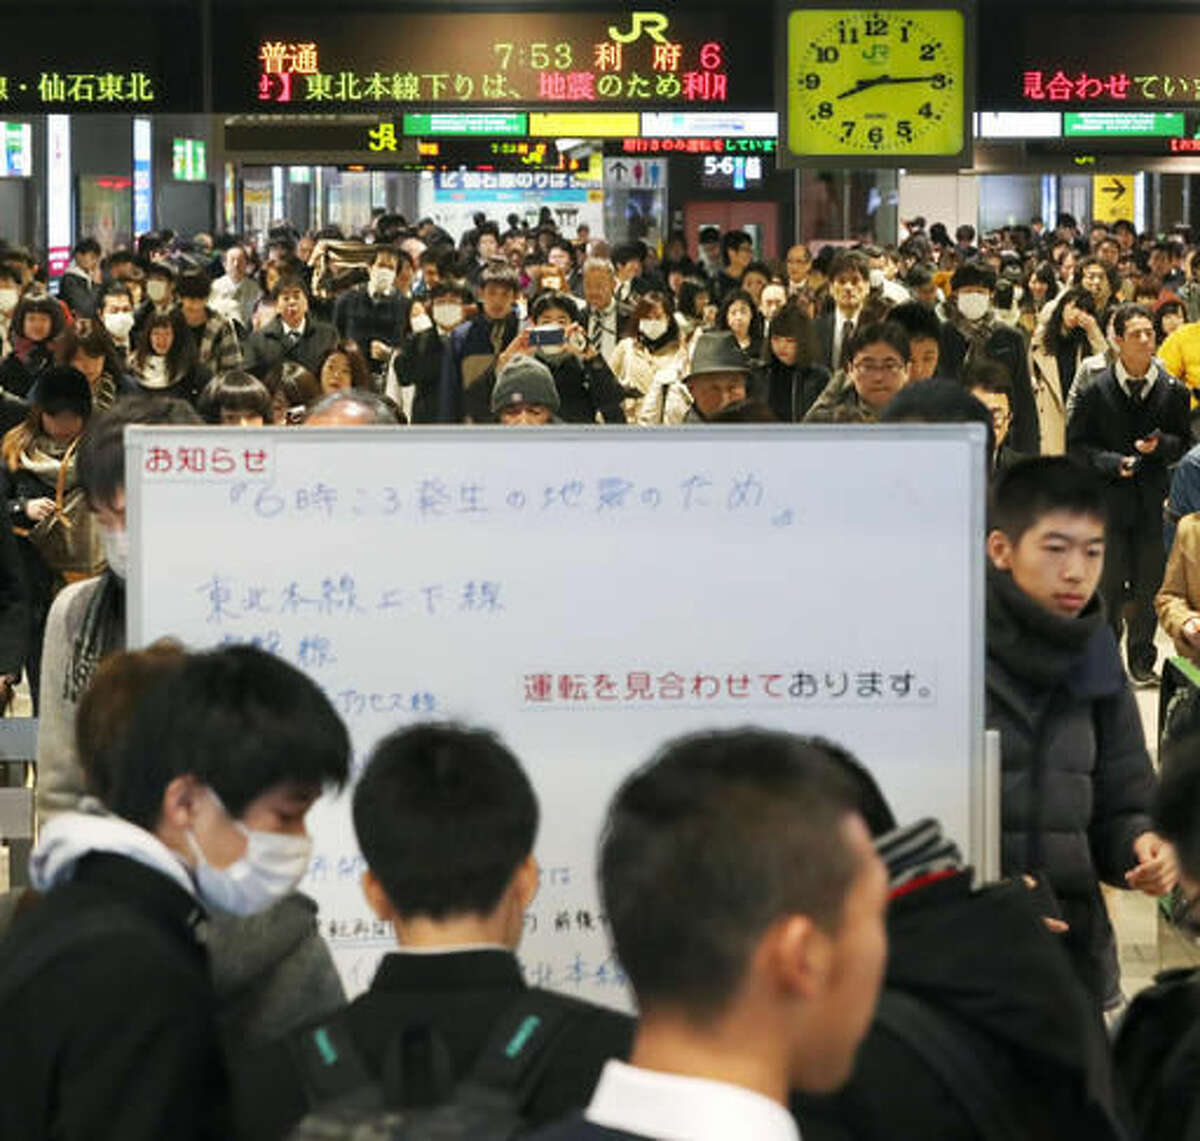 Passengers crowd around the information board posting full suspension of the Tohoku Main Line train service due to an earthquake at Sendai Station in Sendai, Miyagi prefecture, northern Japan, Tuesday, Nov. 22, 2016. Coastal residents in Japan were ordered to flee to higher ground on Tuesday after a strong earthquake struck off the coast of Fukushima prefecture. (Jun Hirata/Kyodo News via AP)